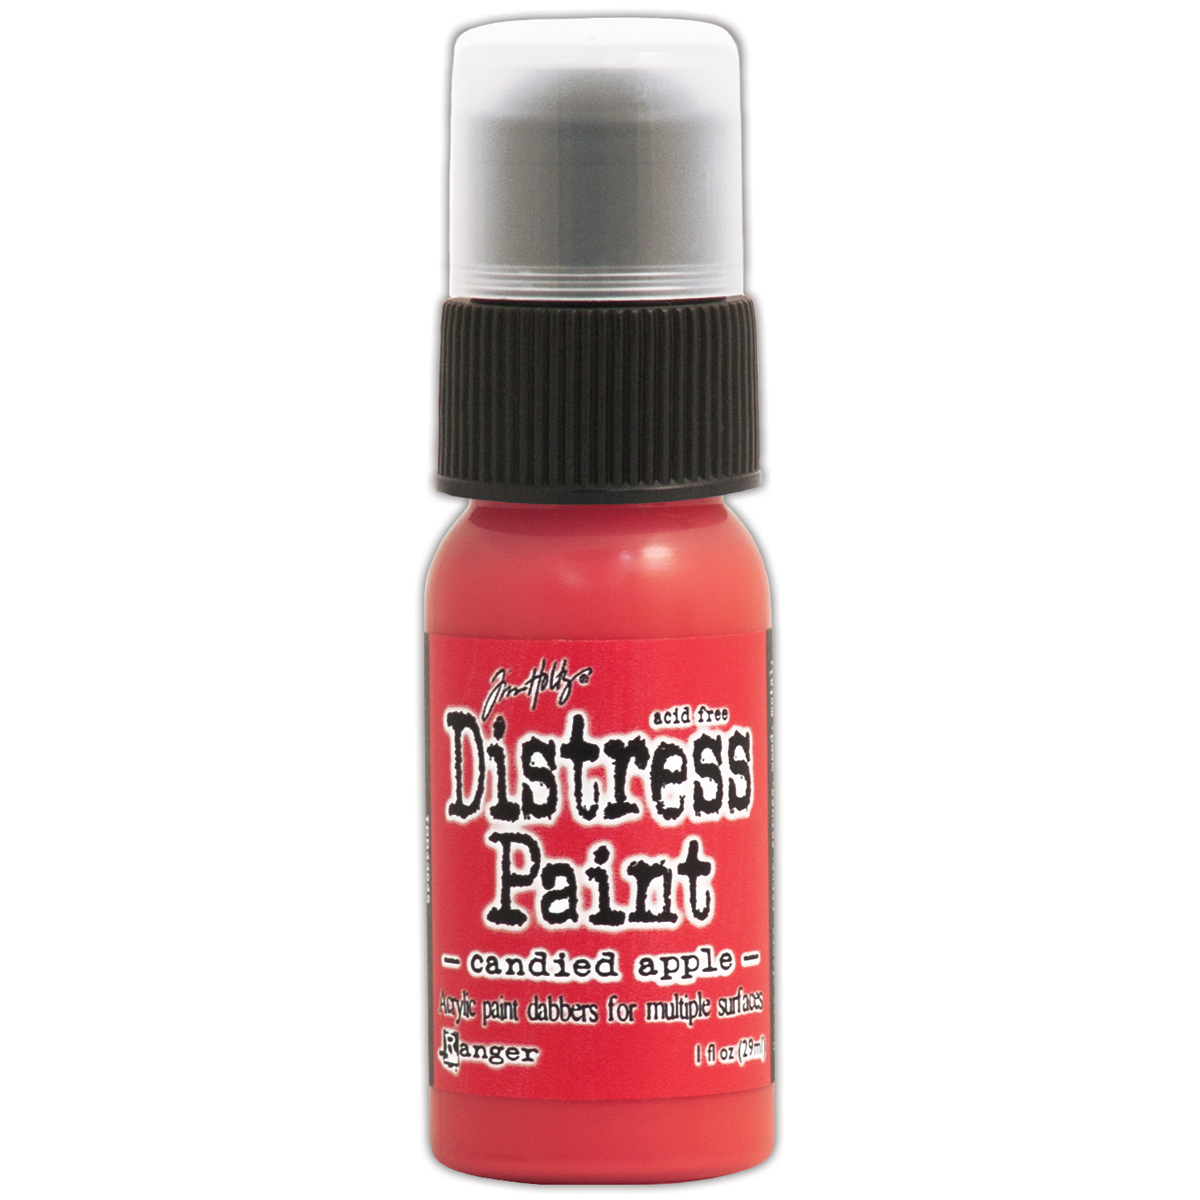 Distress Paint Candied Apple